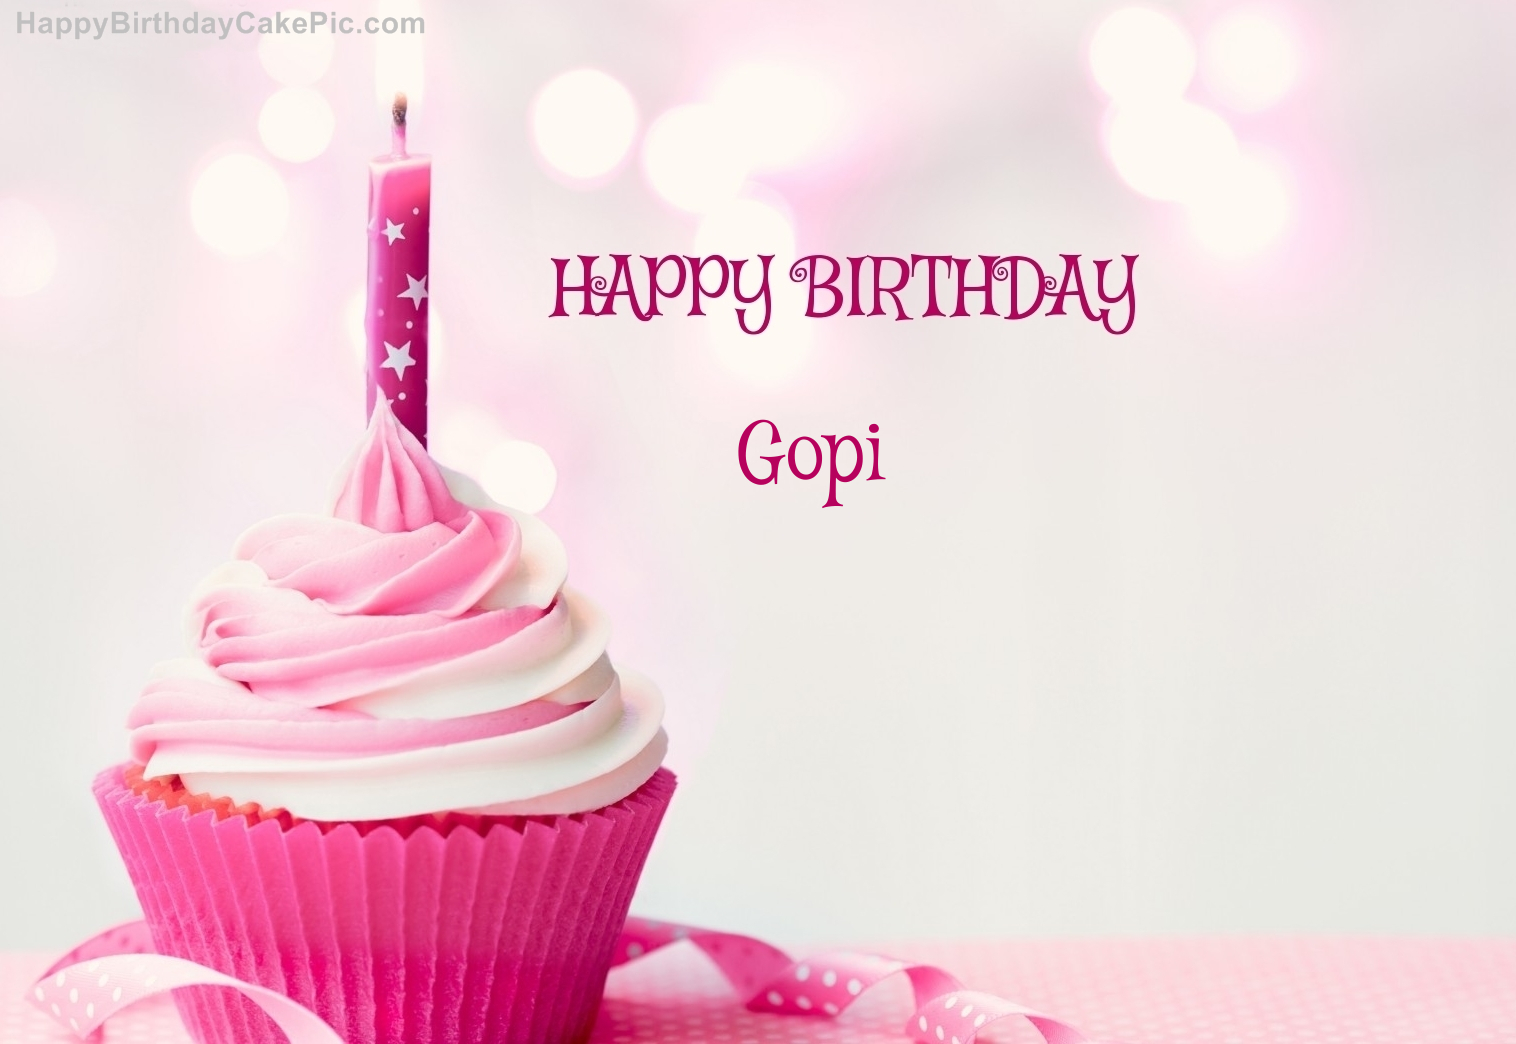 Happy Birthday Cupcake Candle Pink Cake For Gopi